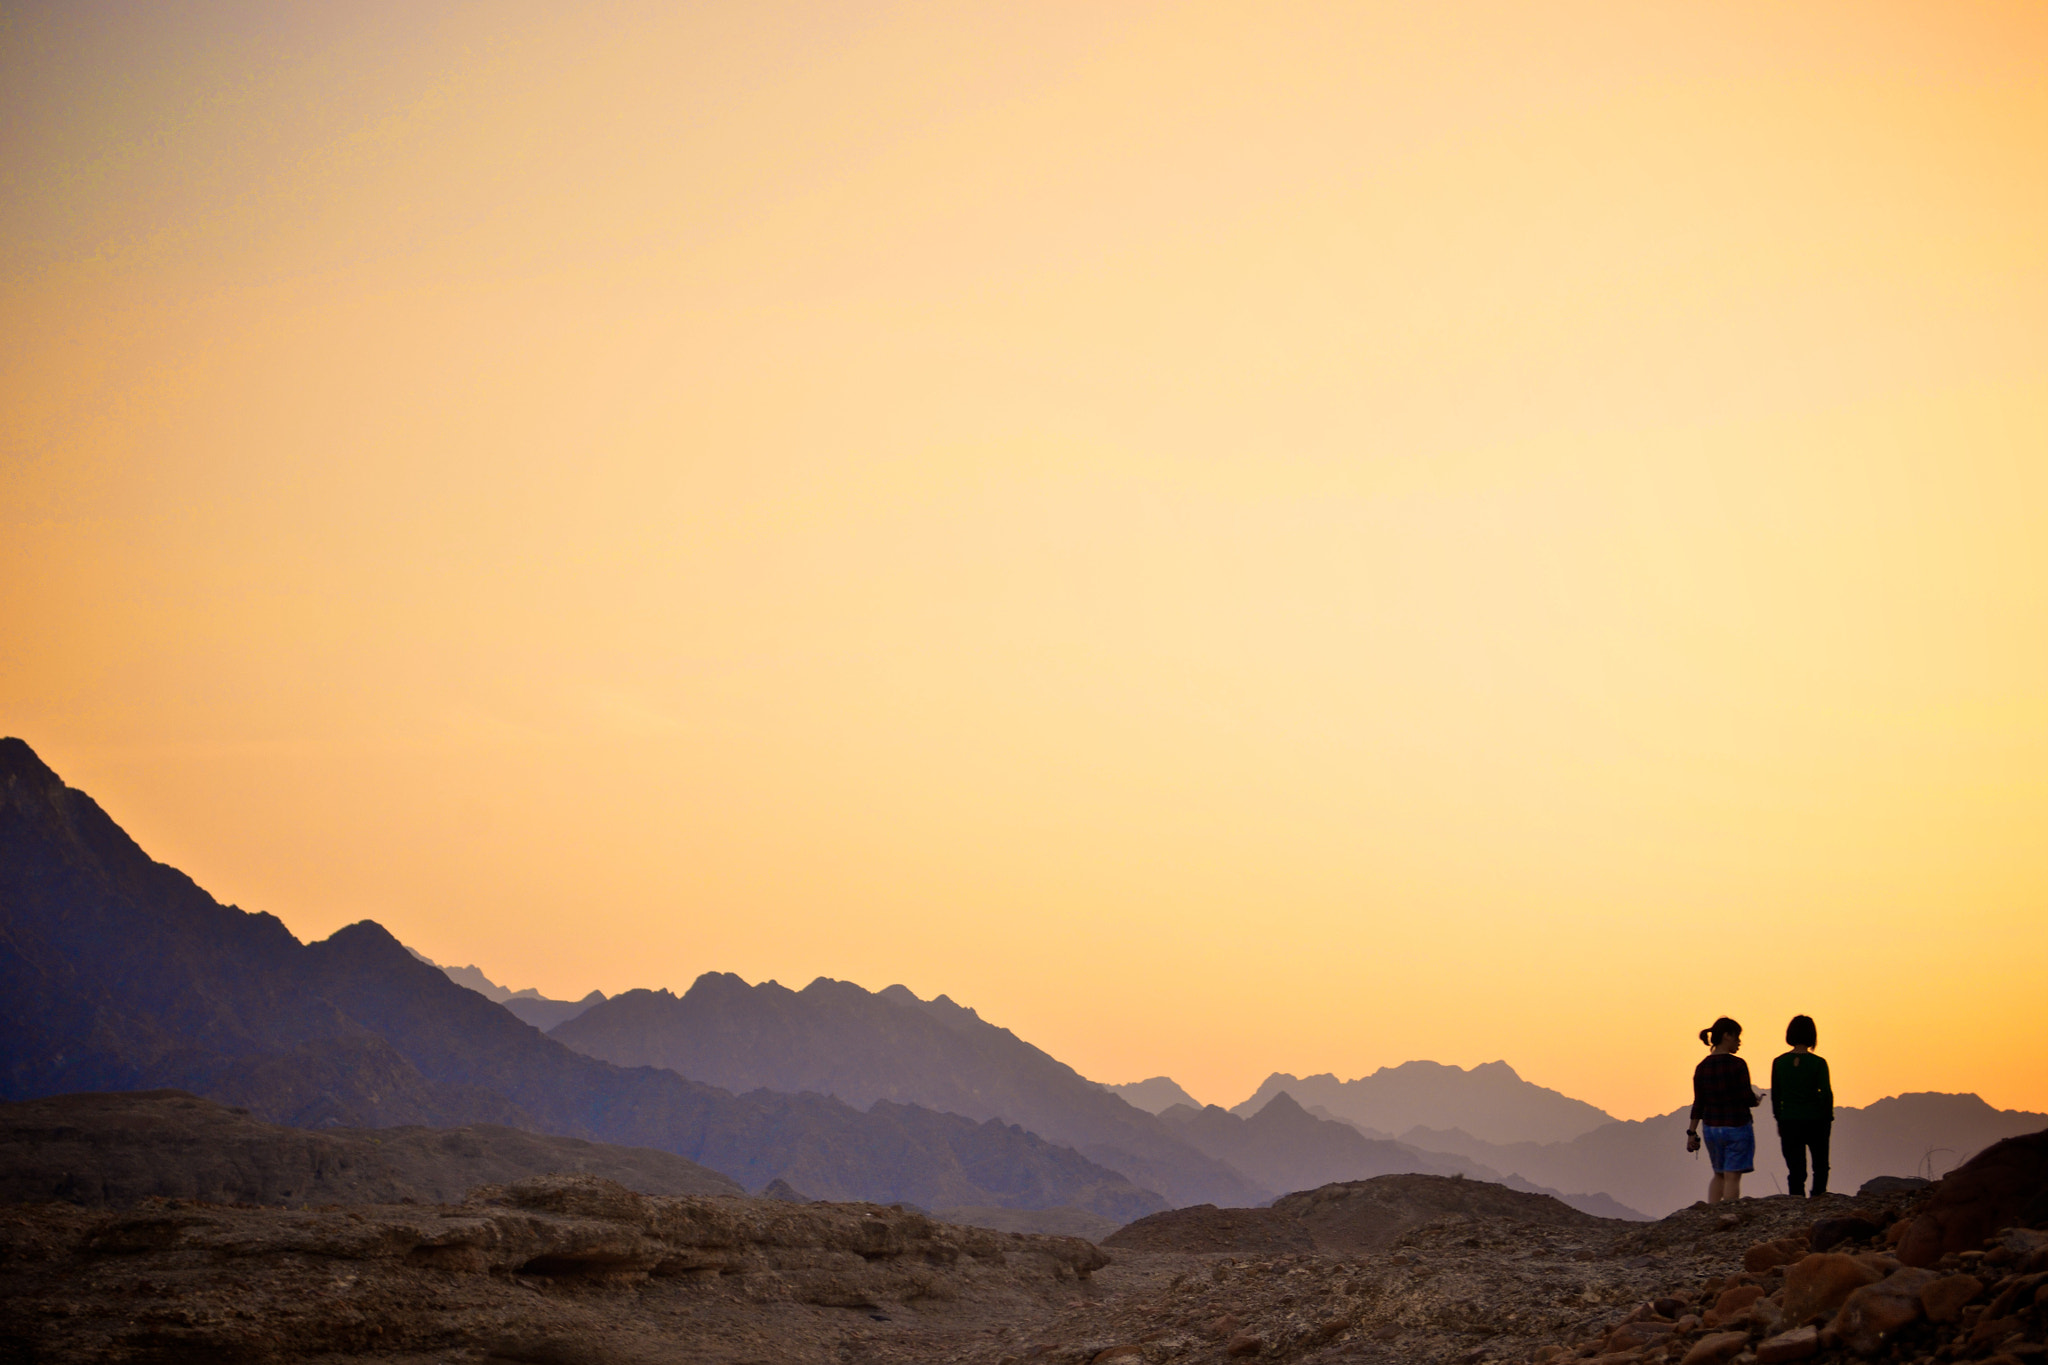 Photograph Hajar mountains, Oman by Julius yls on 500px